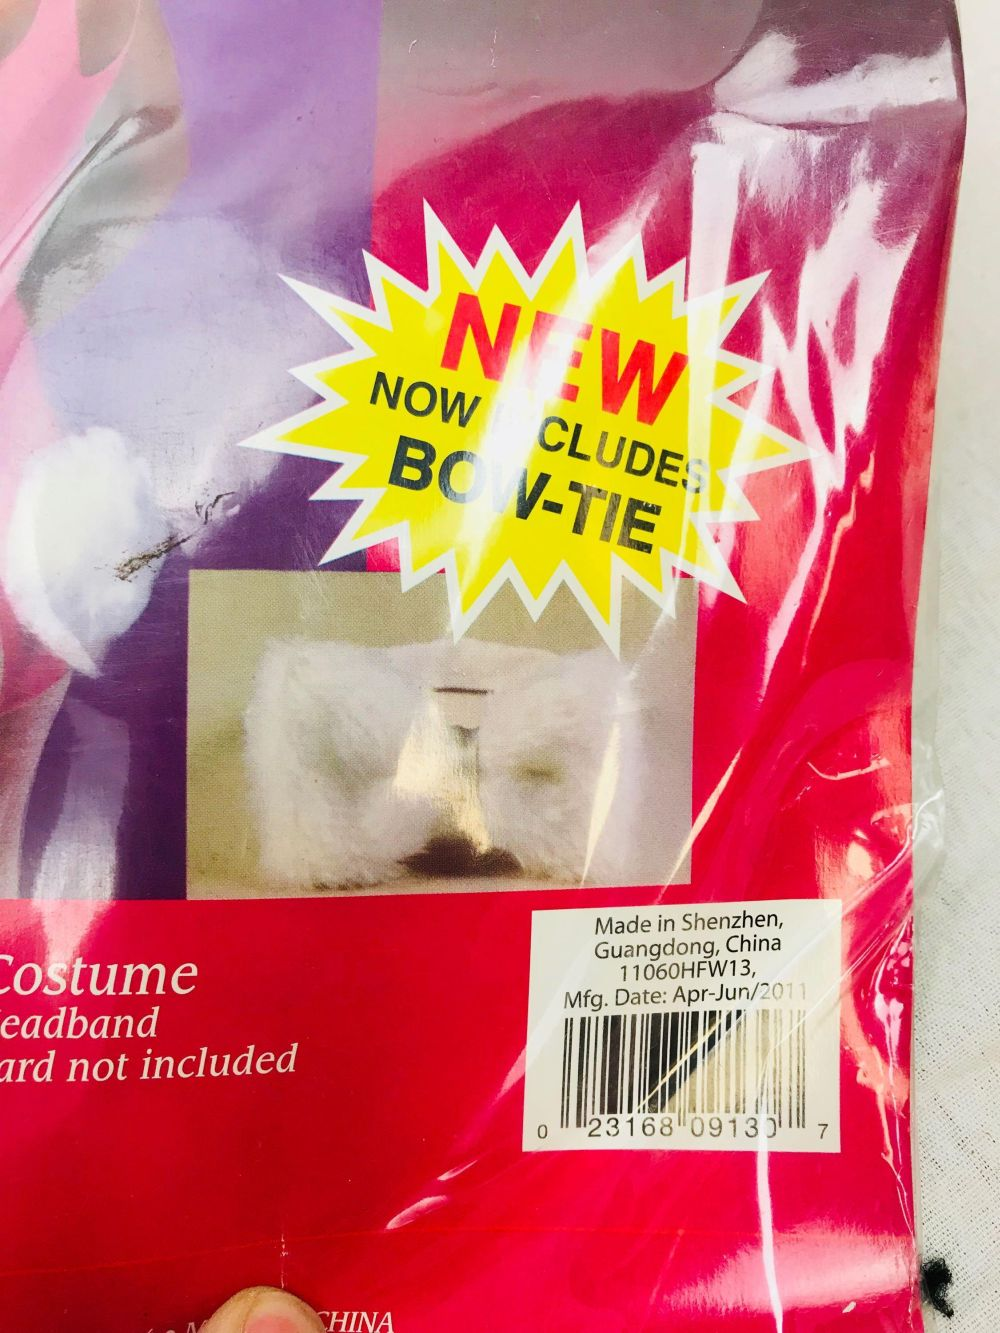 Lot 1021: 3 Cat and Bunny Ears and Tail Halloween Costume NOS